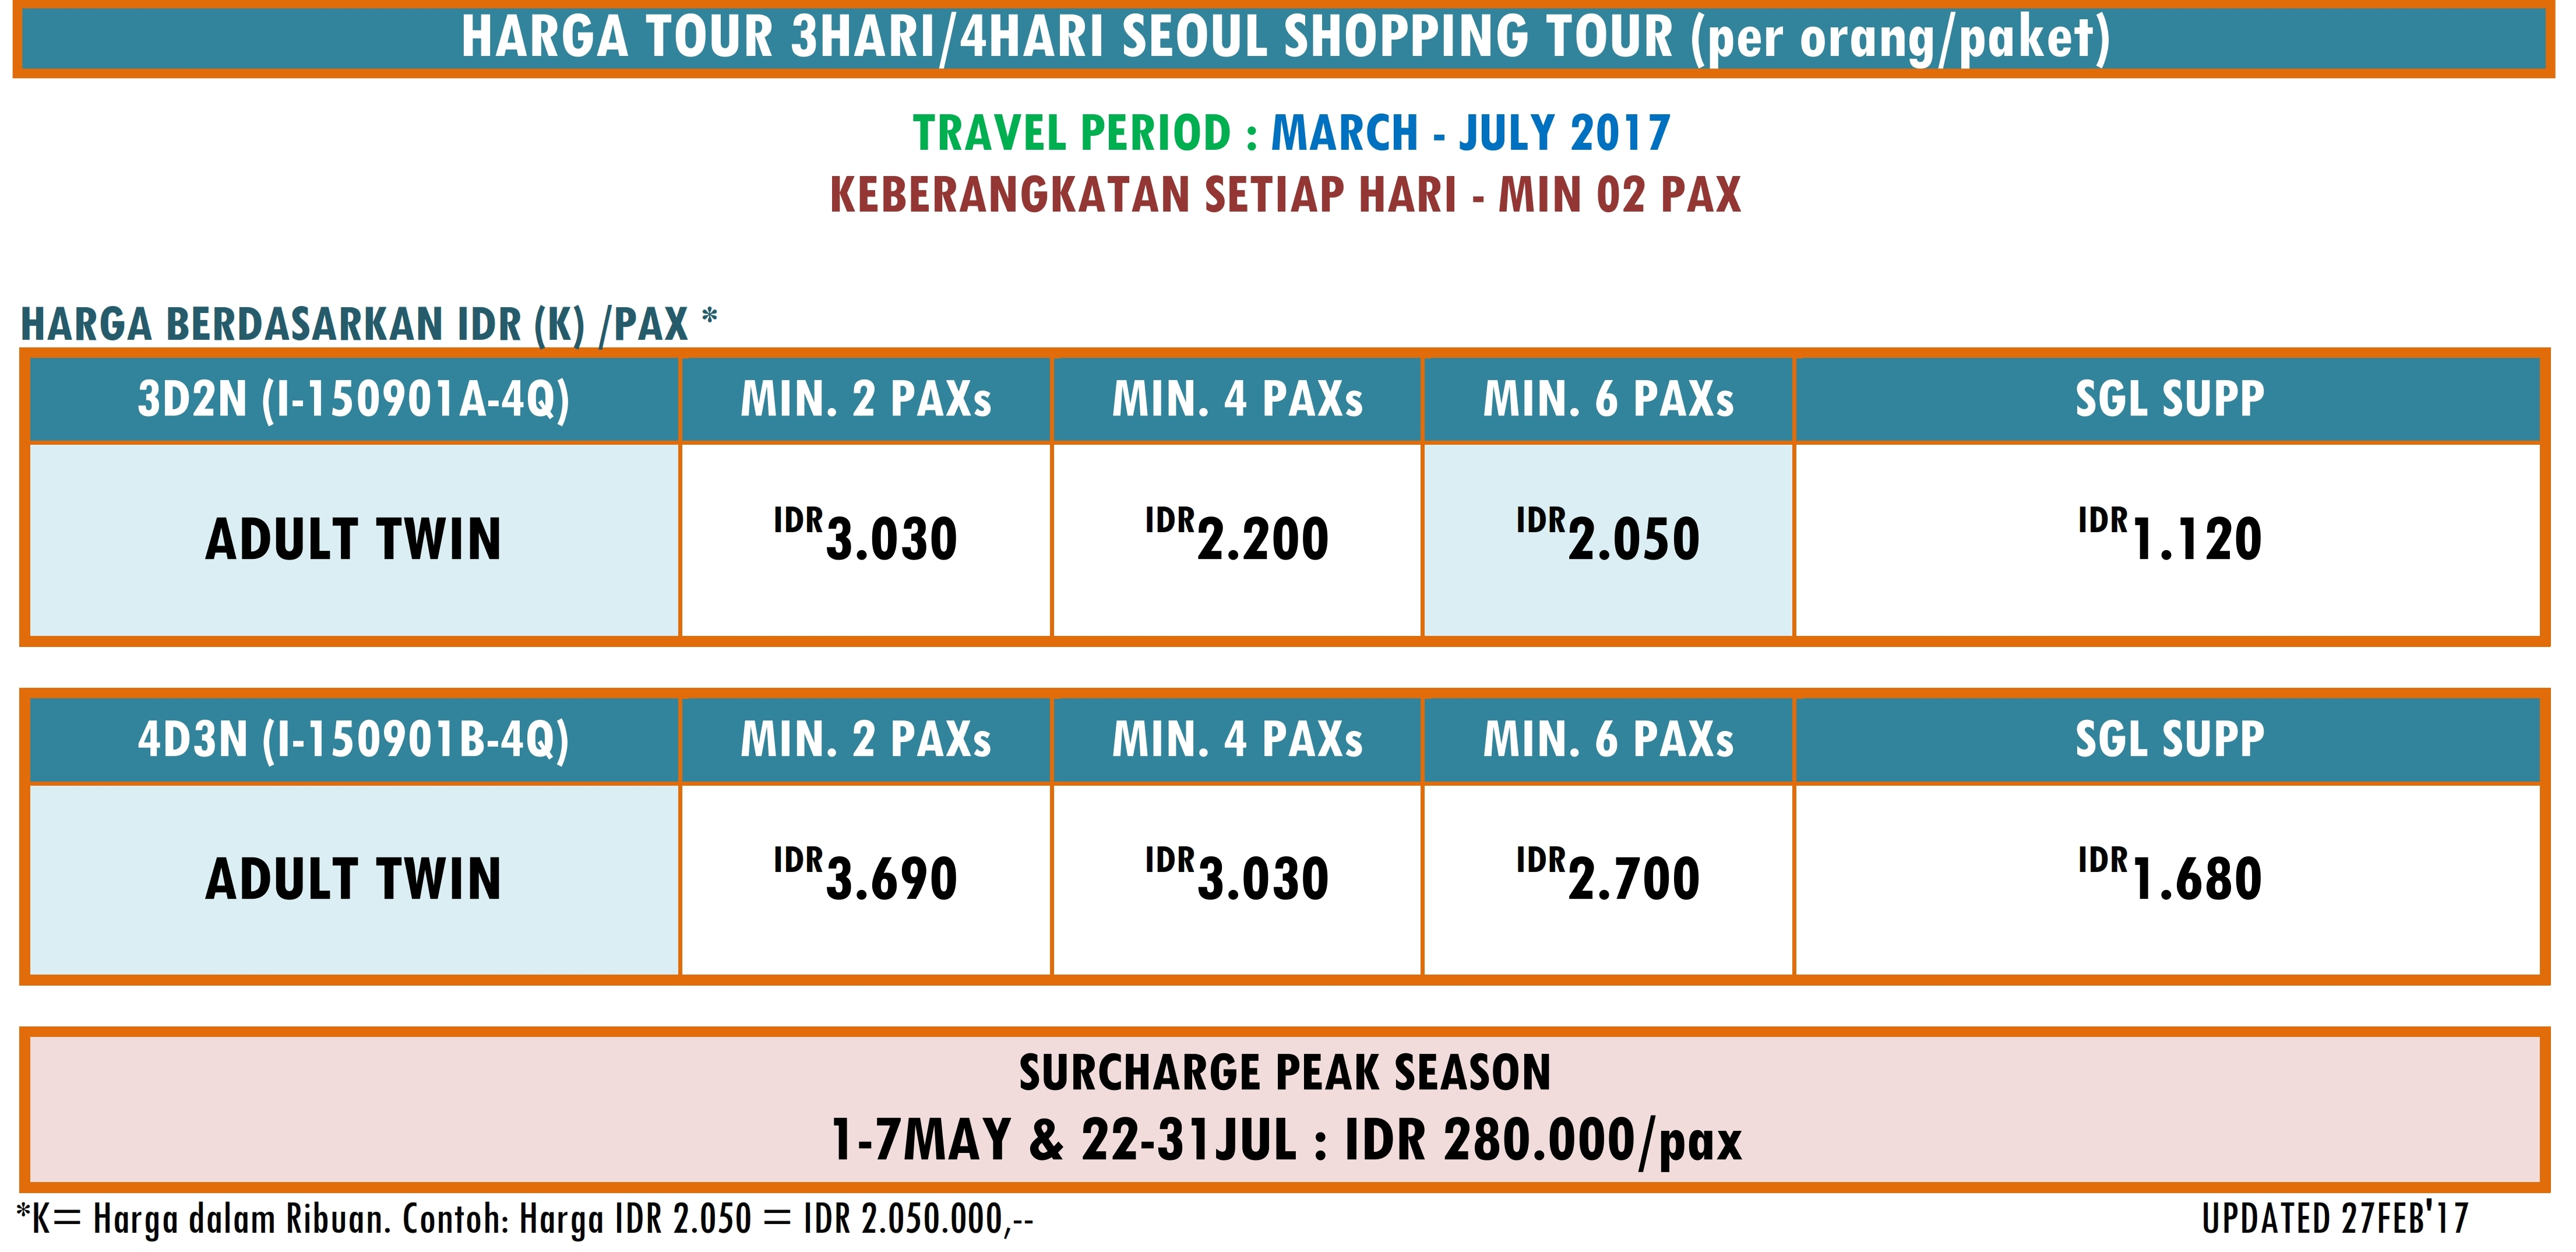 WH01 - LAND ONLY 3OR4D 2 IN 1 SEOUL SHOPPING TOUR PERIOD MAR - JUL 2017_002